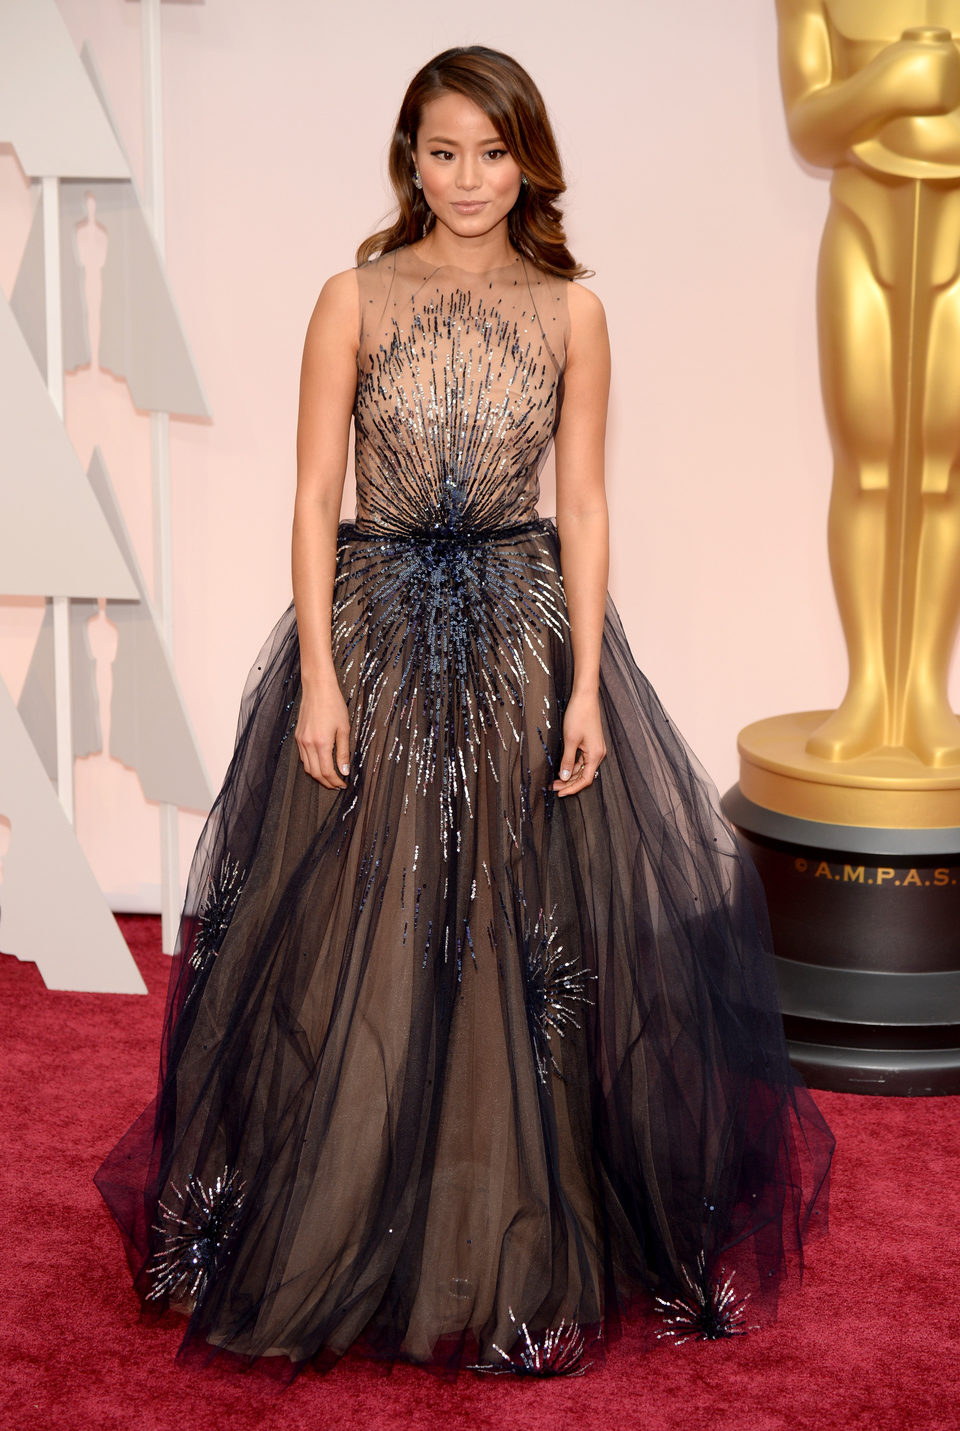 Jamie Chung at the Oscars Awards 2015 red carpet